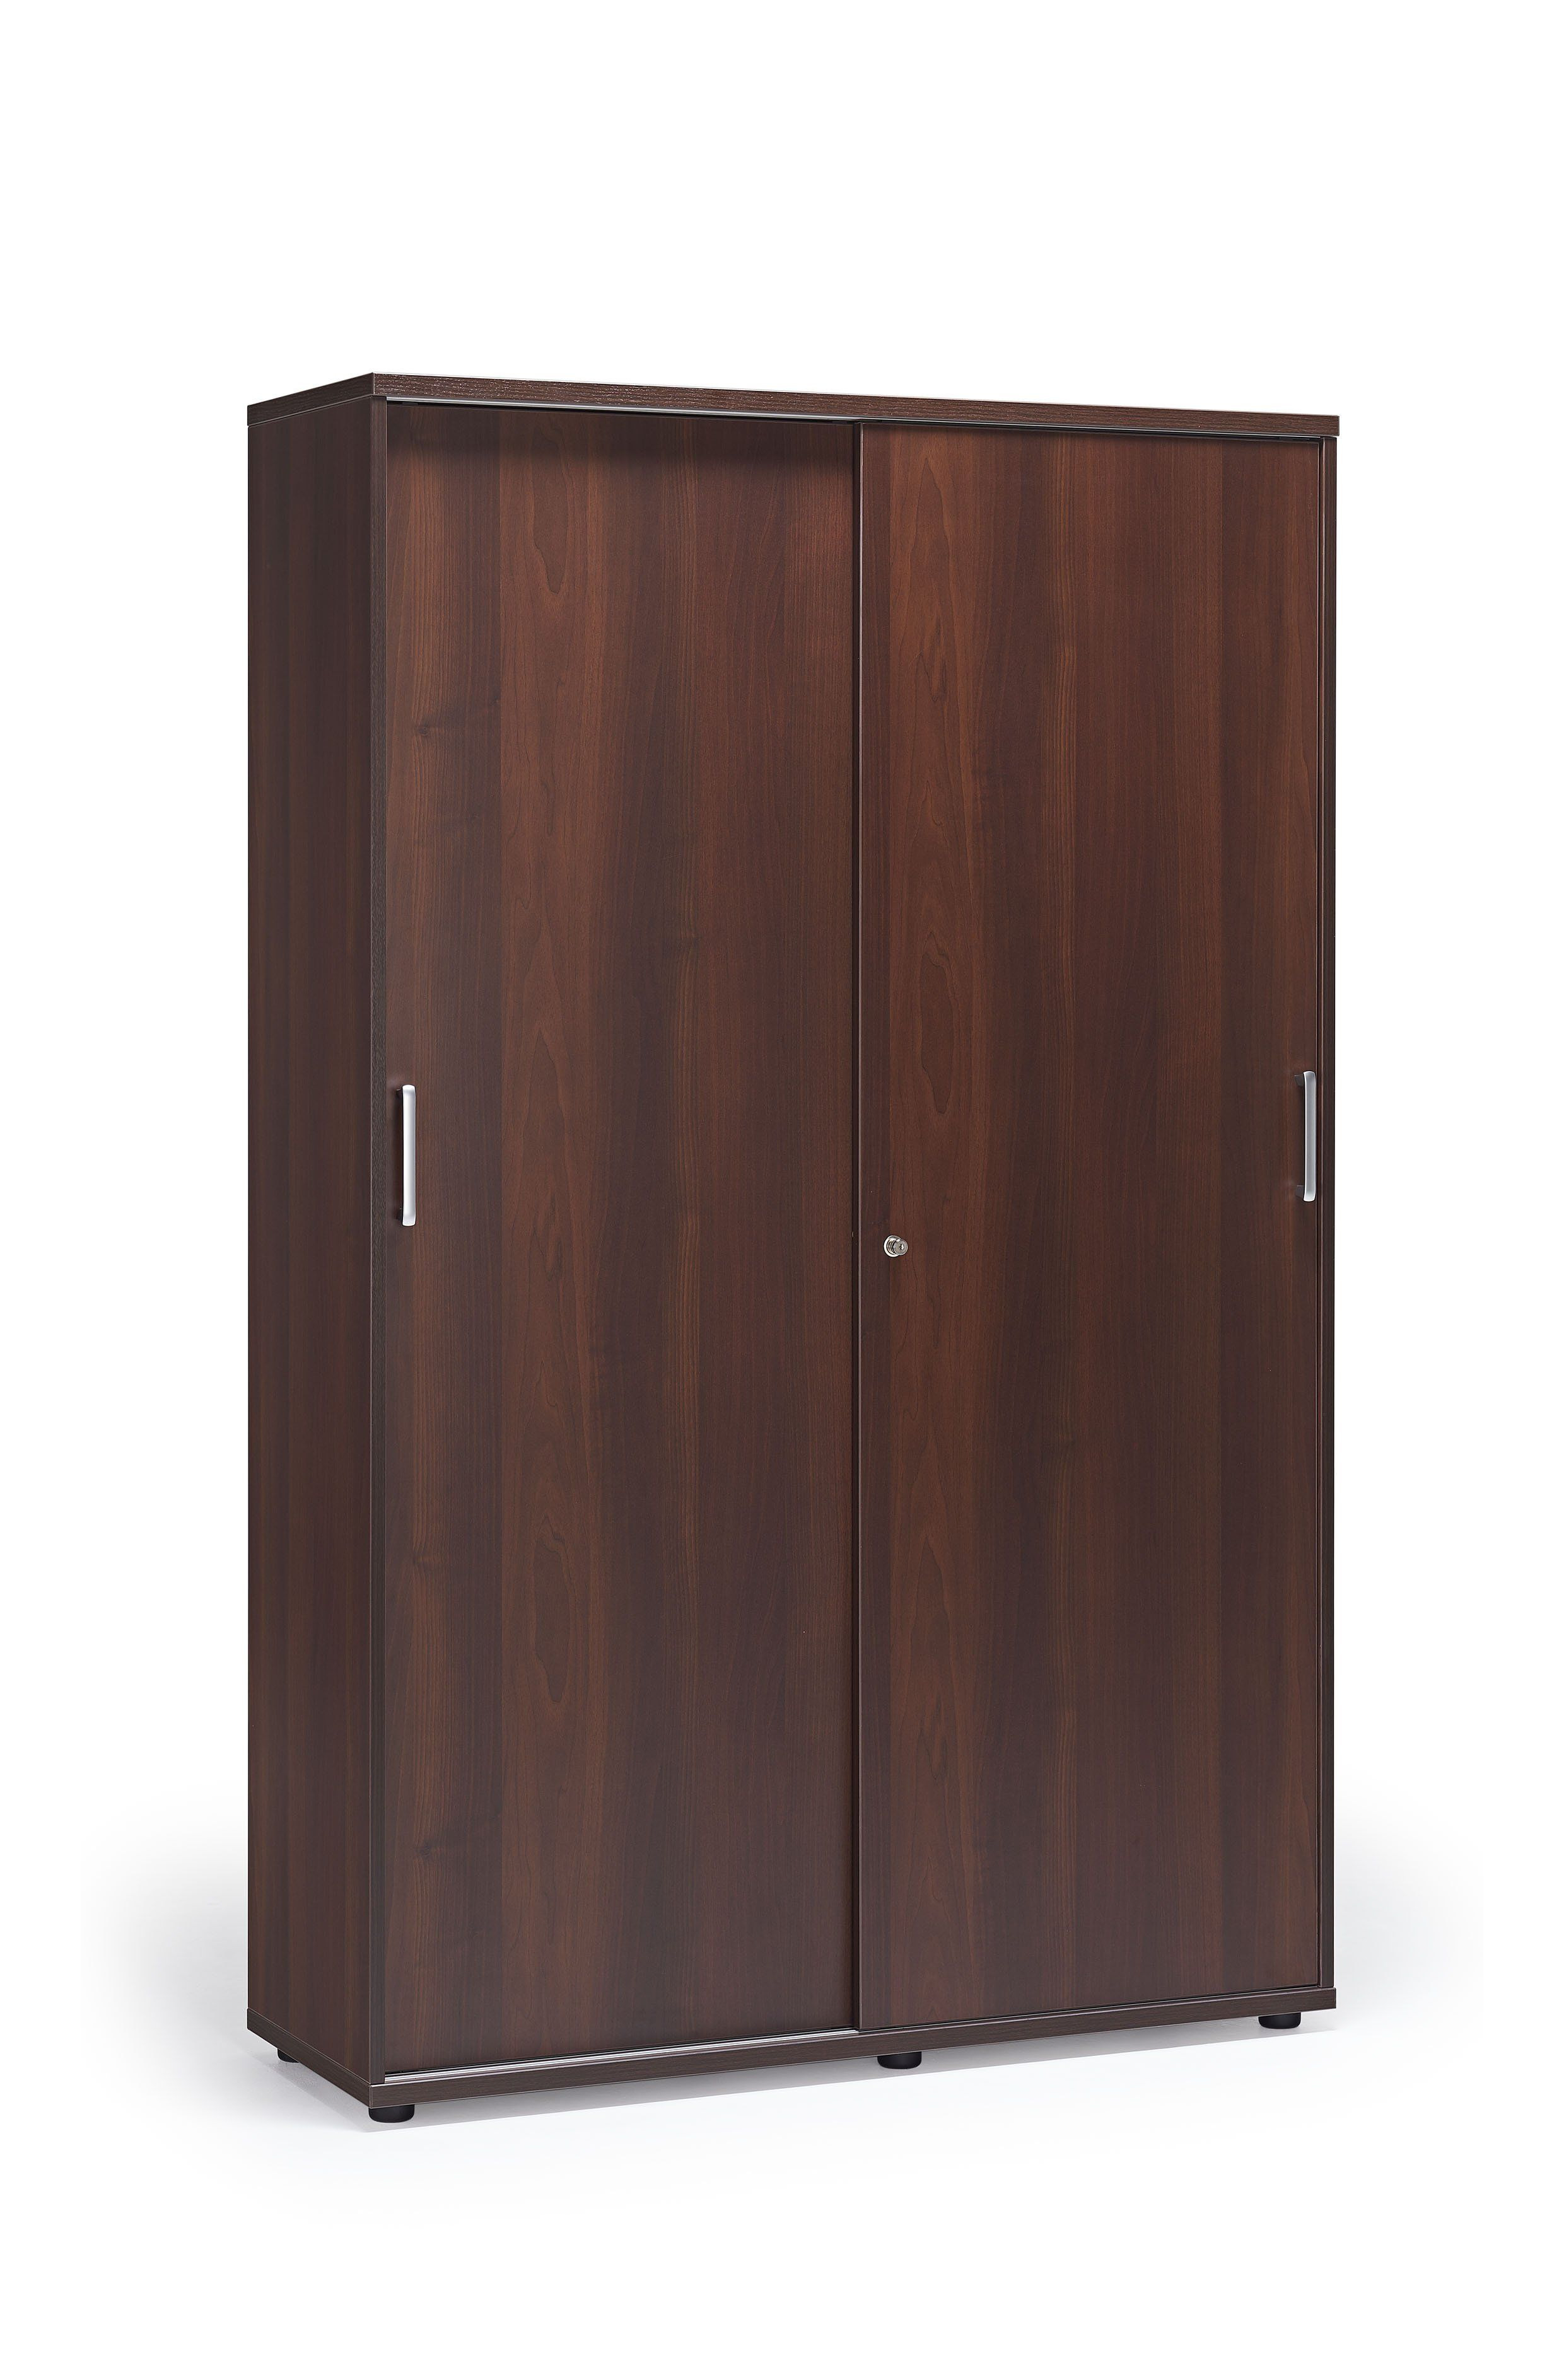 Office Cabinets with Doors Lovely Walnut Fice Cupboard with Sliding Doors